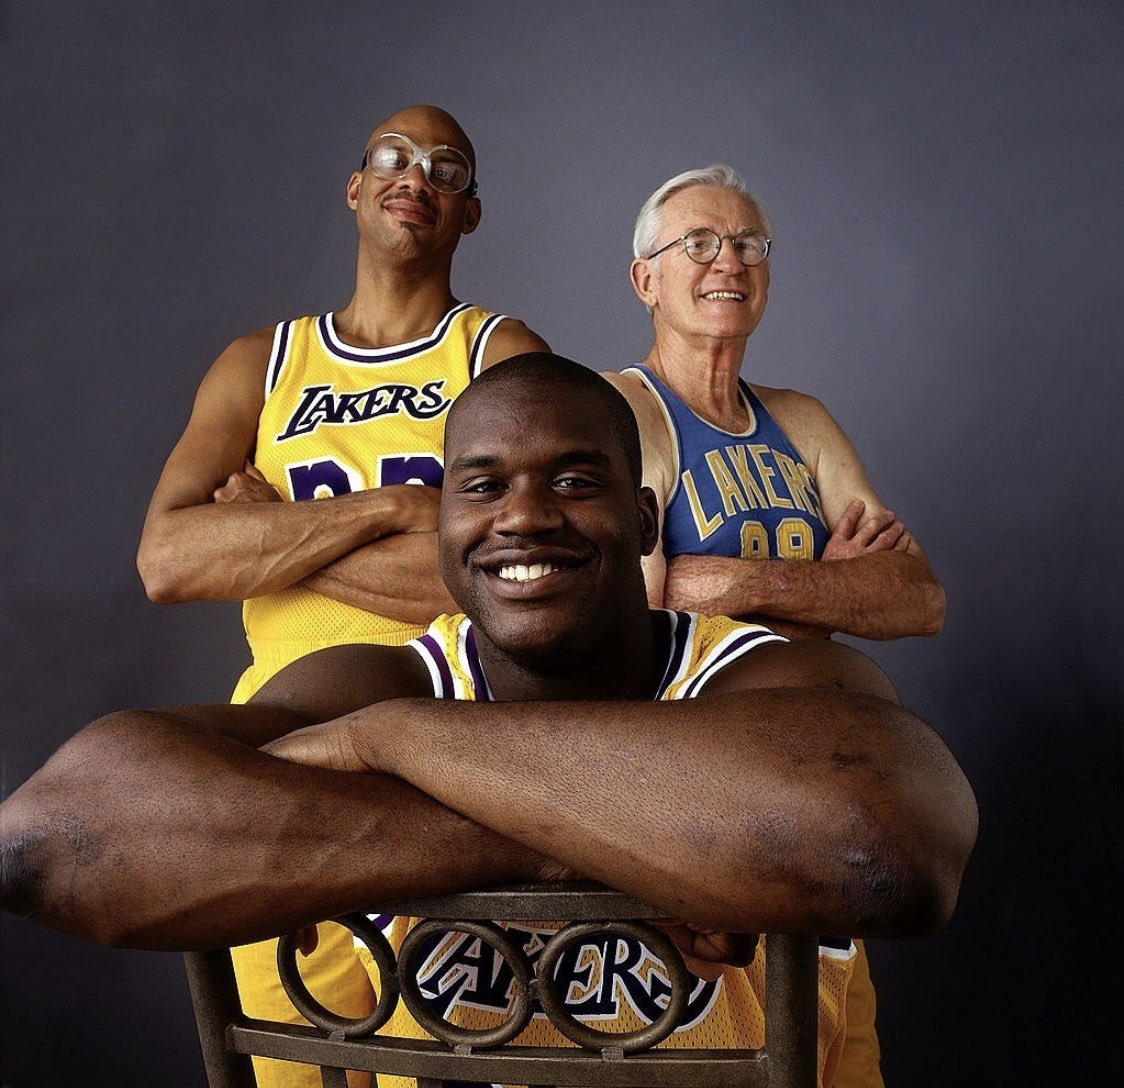 LOS ANGELES - 1996: Shaquille O'Neal #34, Kareem Abdul Jabbar #33 and George Mikan #88, three generations of great Los Angeles Lakers centers pose for a portrait in Los Angeles, California. NOTE TO USER: User expressly acknowledges and agrees that, by downloading and/or using this Photograph, User is consenting to the terms and conditions of the Getty Images License Agreement. (Photo By Peter Read Miller/NBAE via Getty Images)